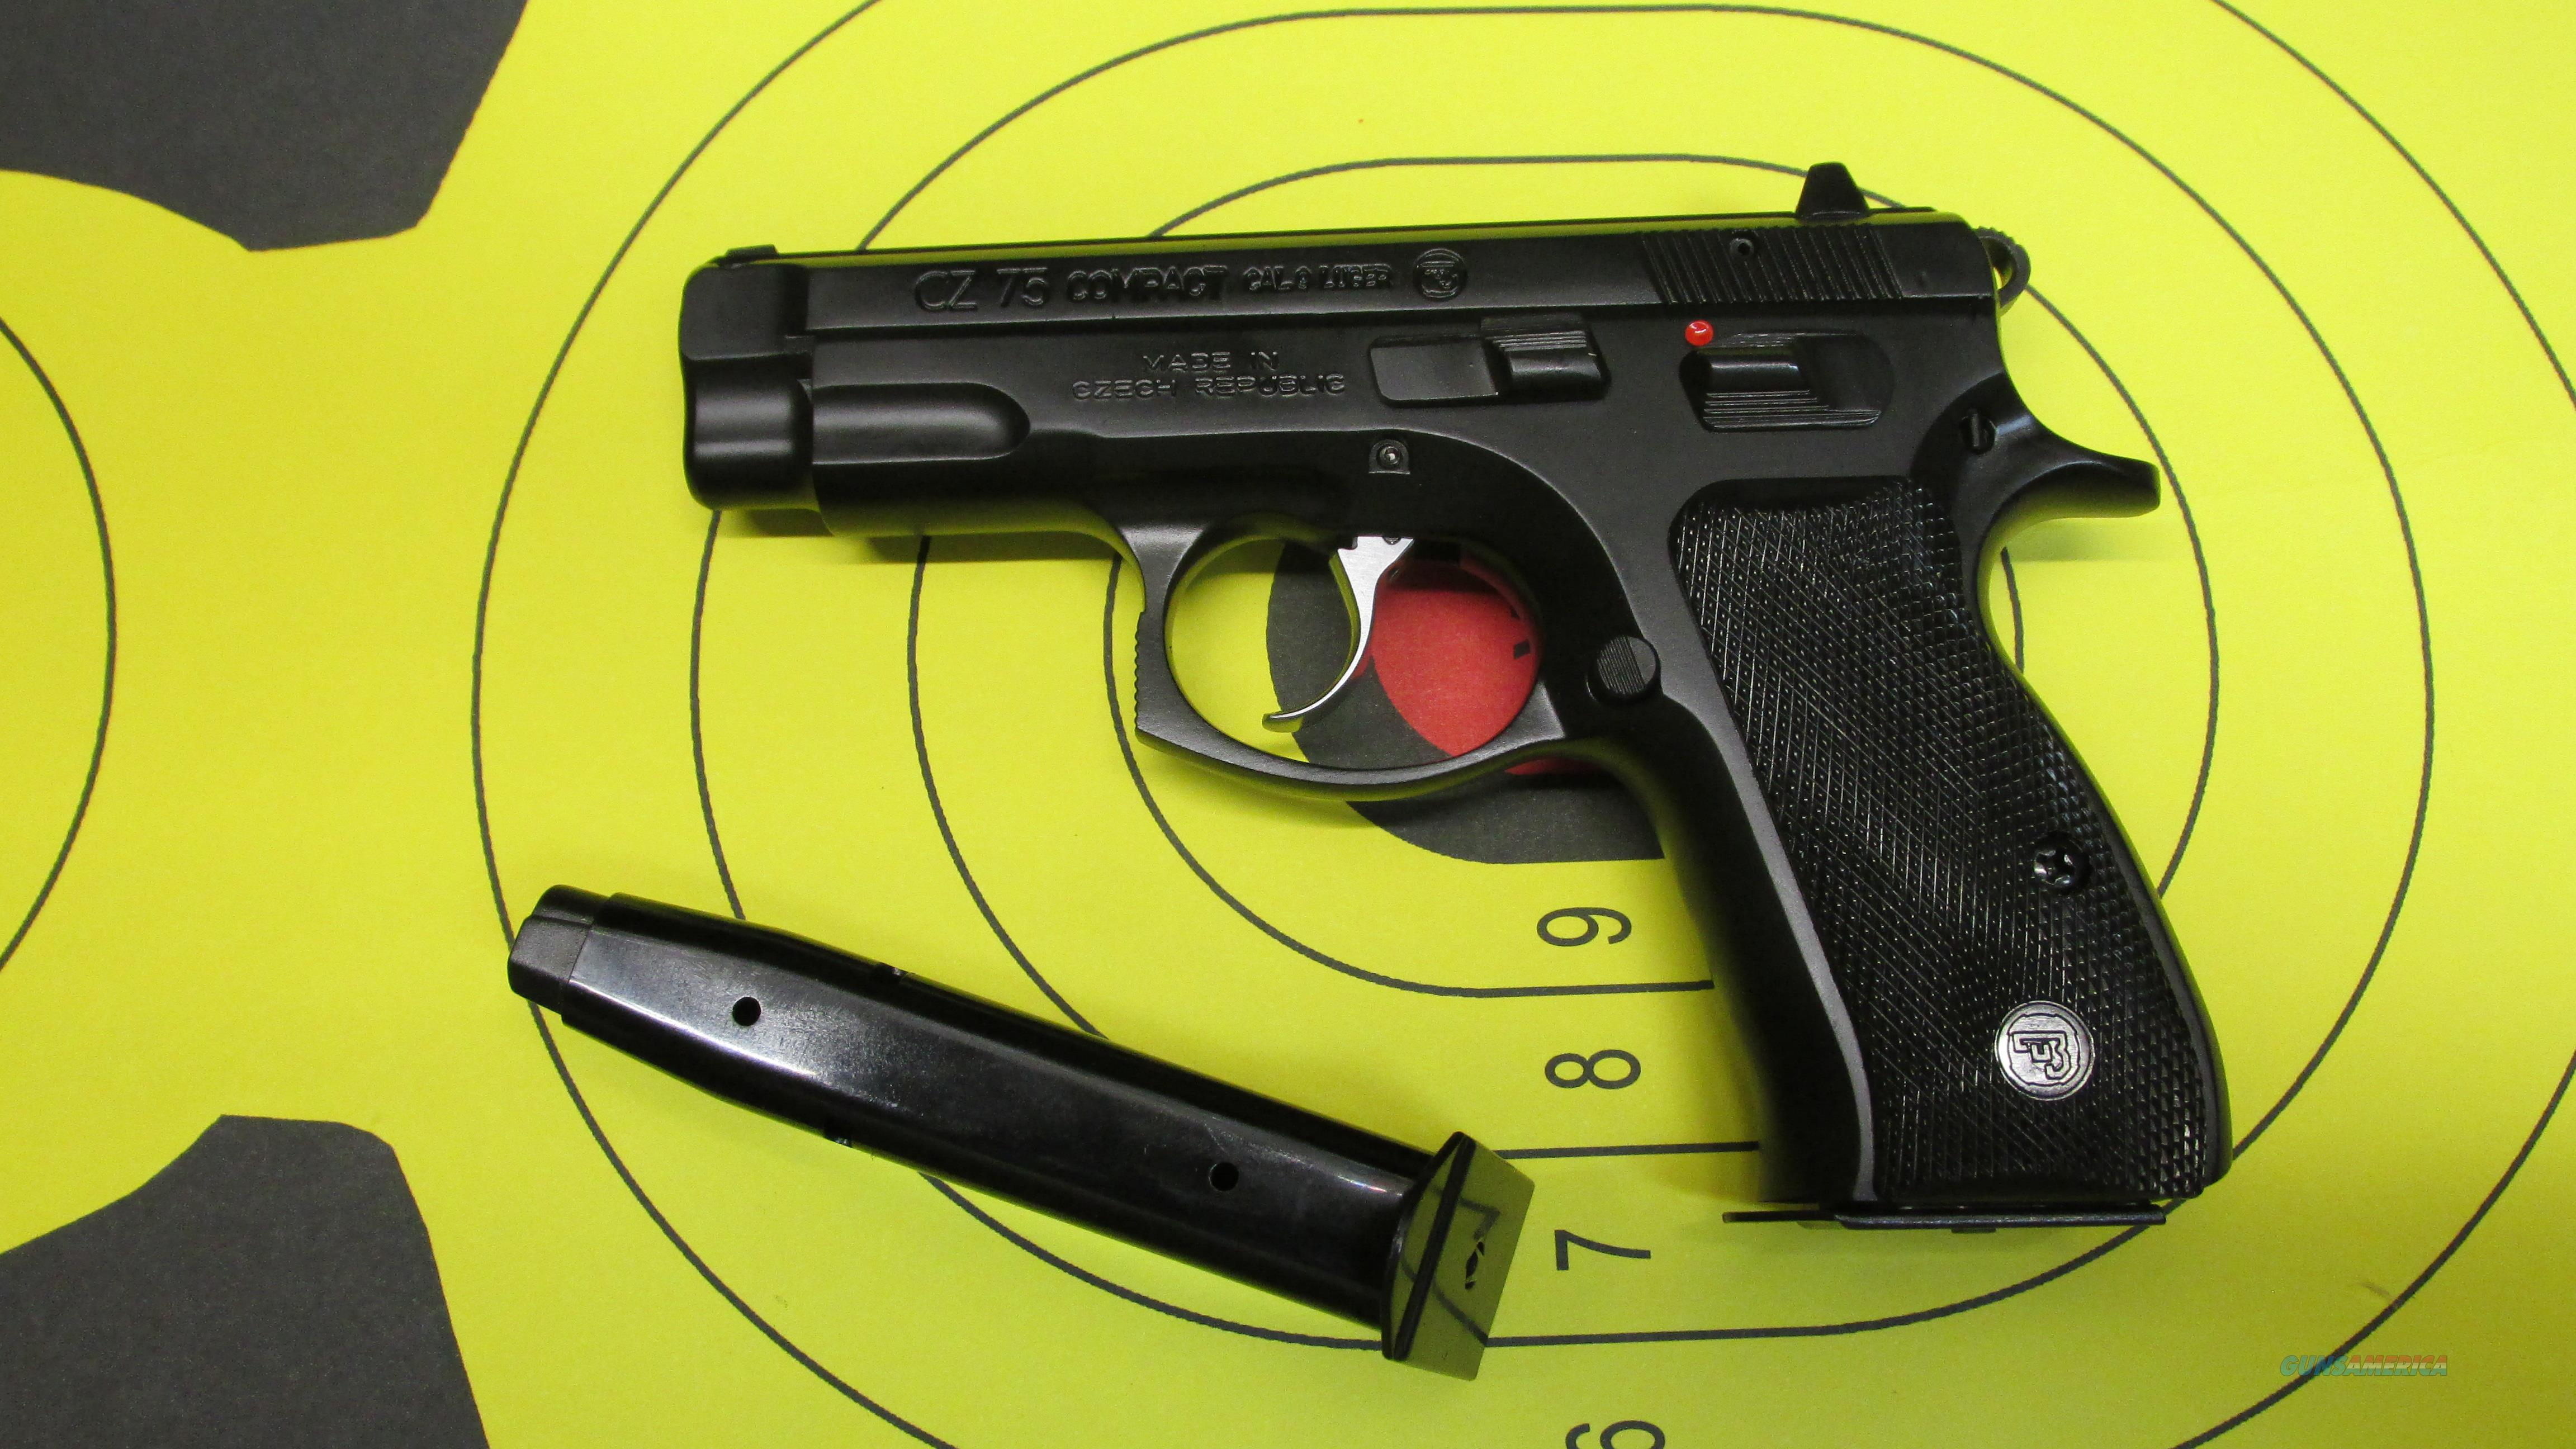 "CZ-USA 75 COMPACT 9MM PISTOL BLACK, (2) 14 ROUND MAGAZINES, 3.5"" BARREL  Guns > Pistols > CZ Pistols"